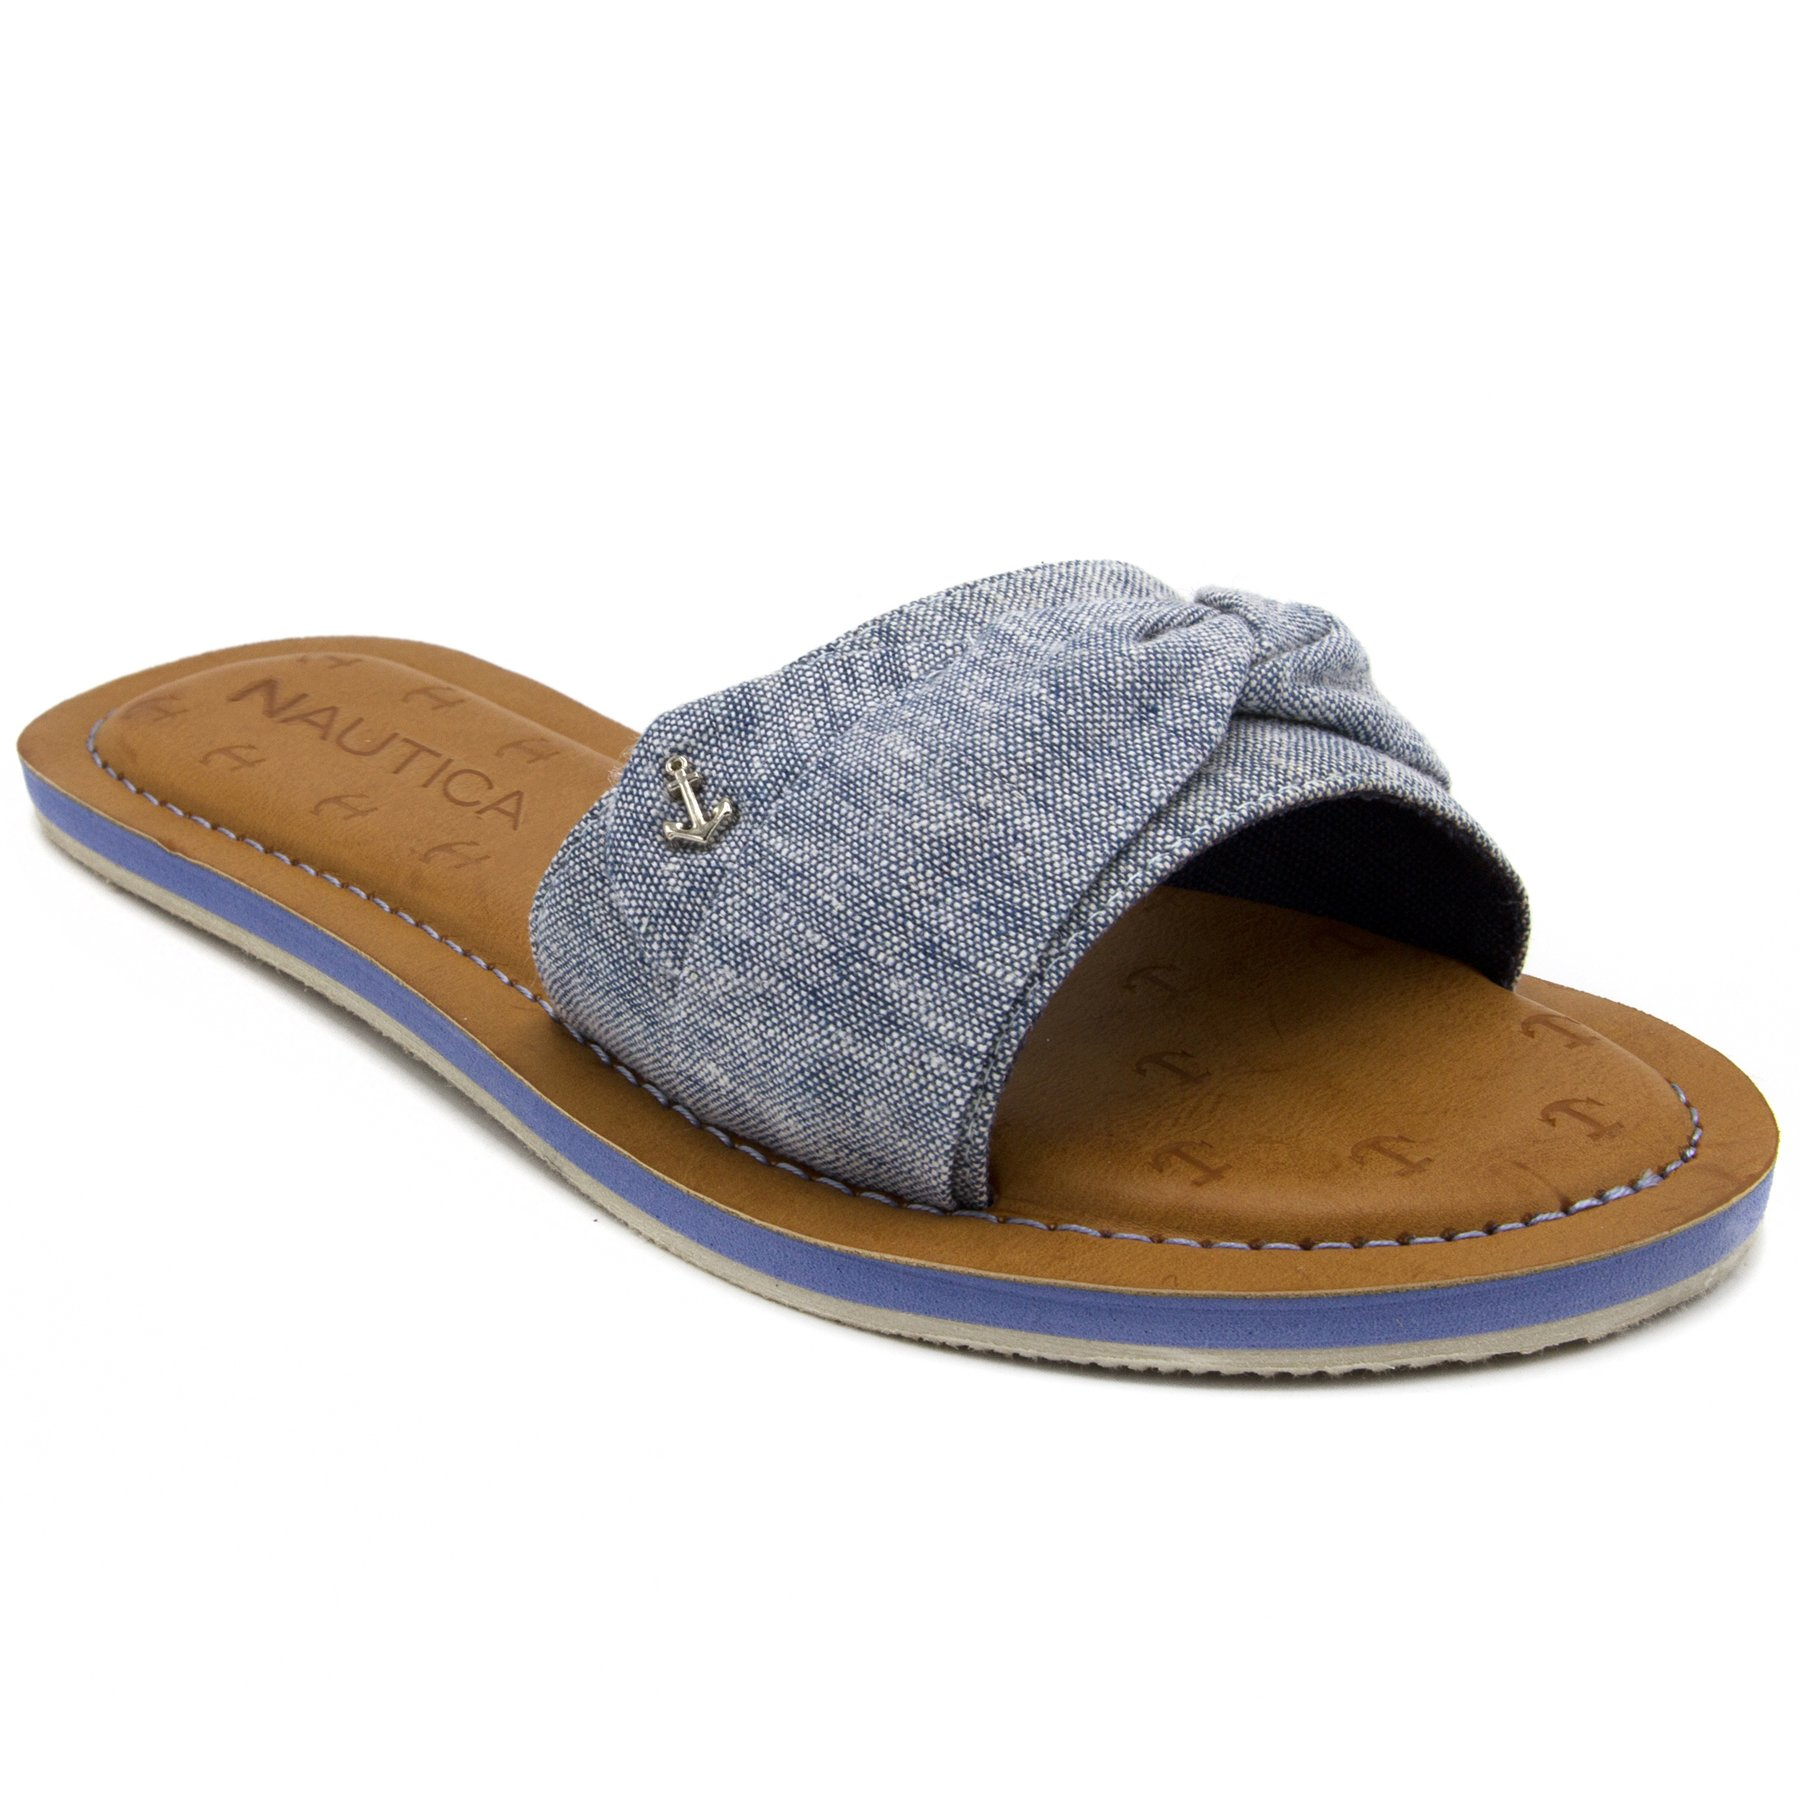 Nautica Women's Hobson Fashion Sandal, Flat Slide with Fabric Strap-Chambray-6